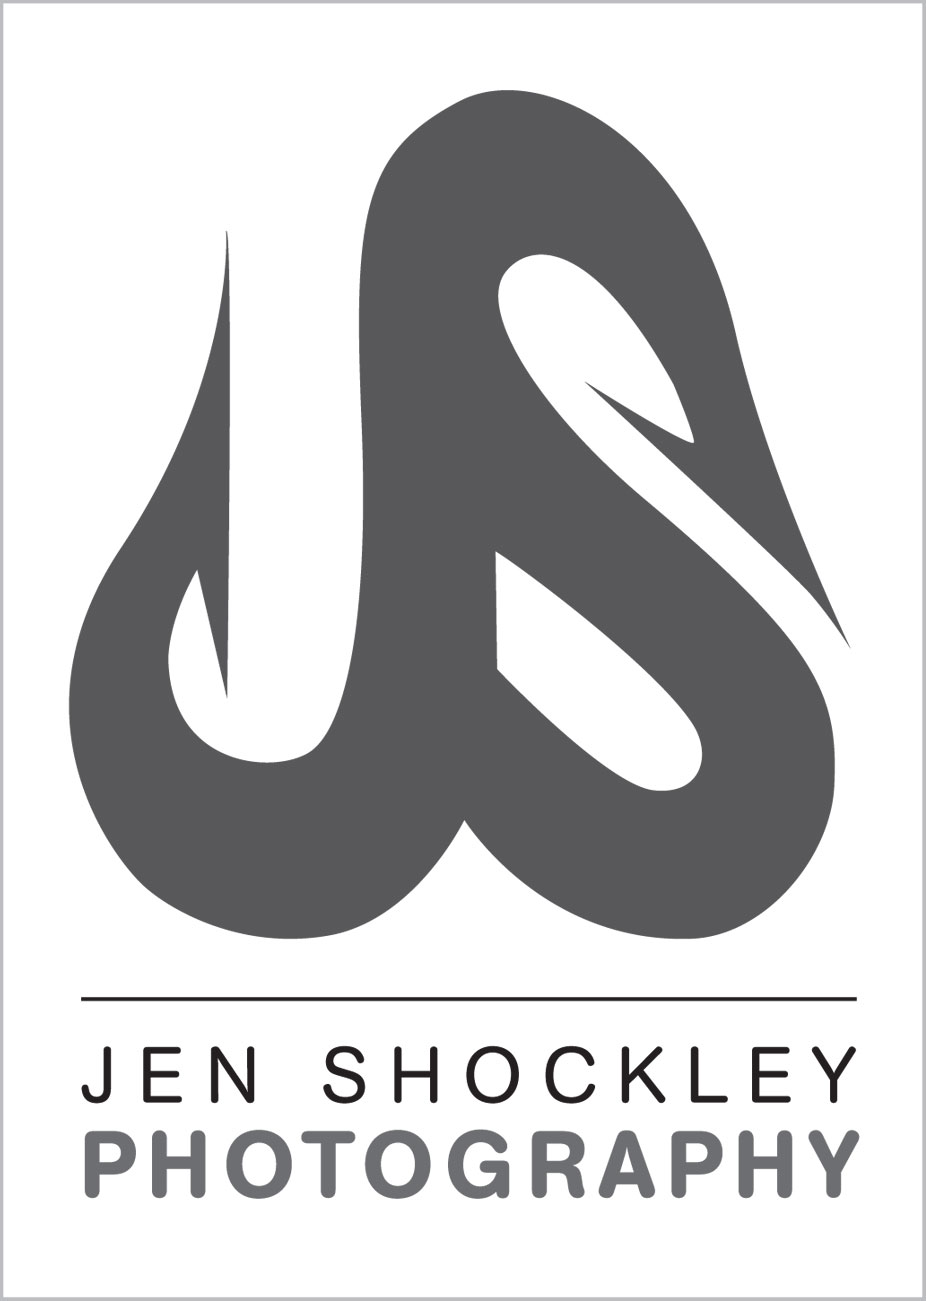 Jen Shockley Photography